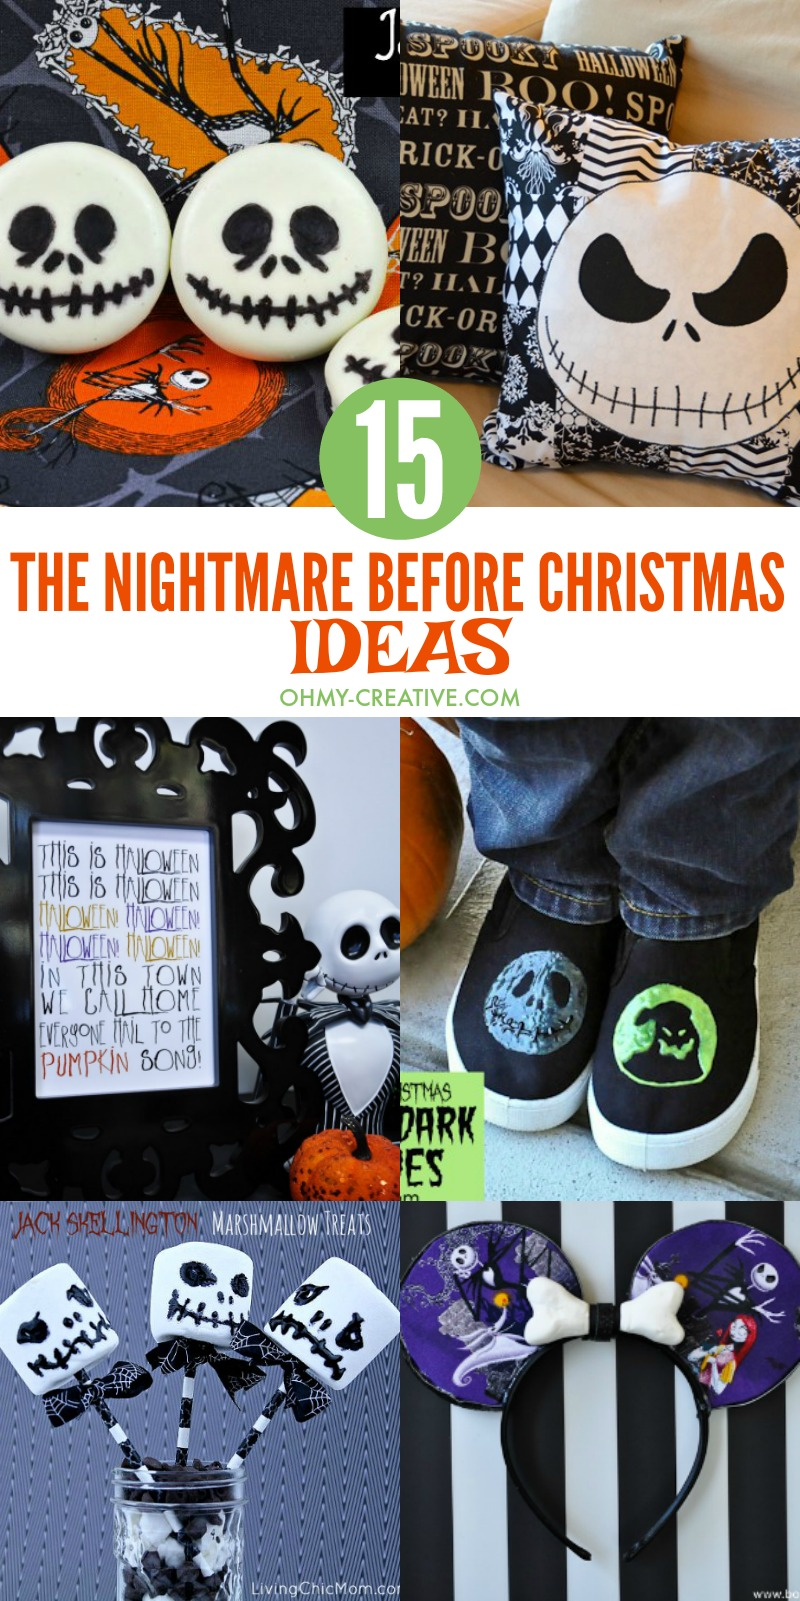 15 Fun The Nightmare Before Christmas Ideas - Oh My Creative